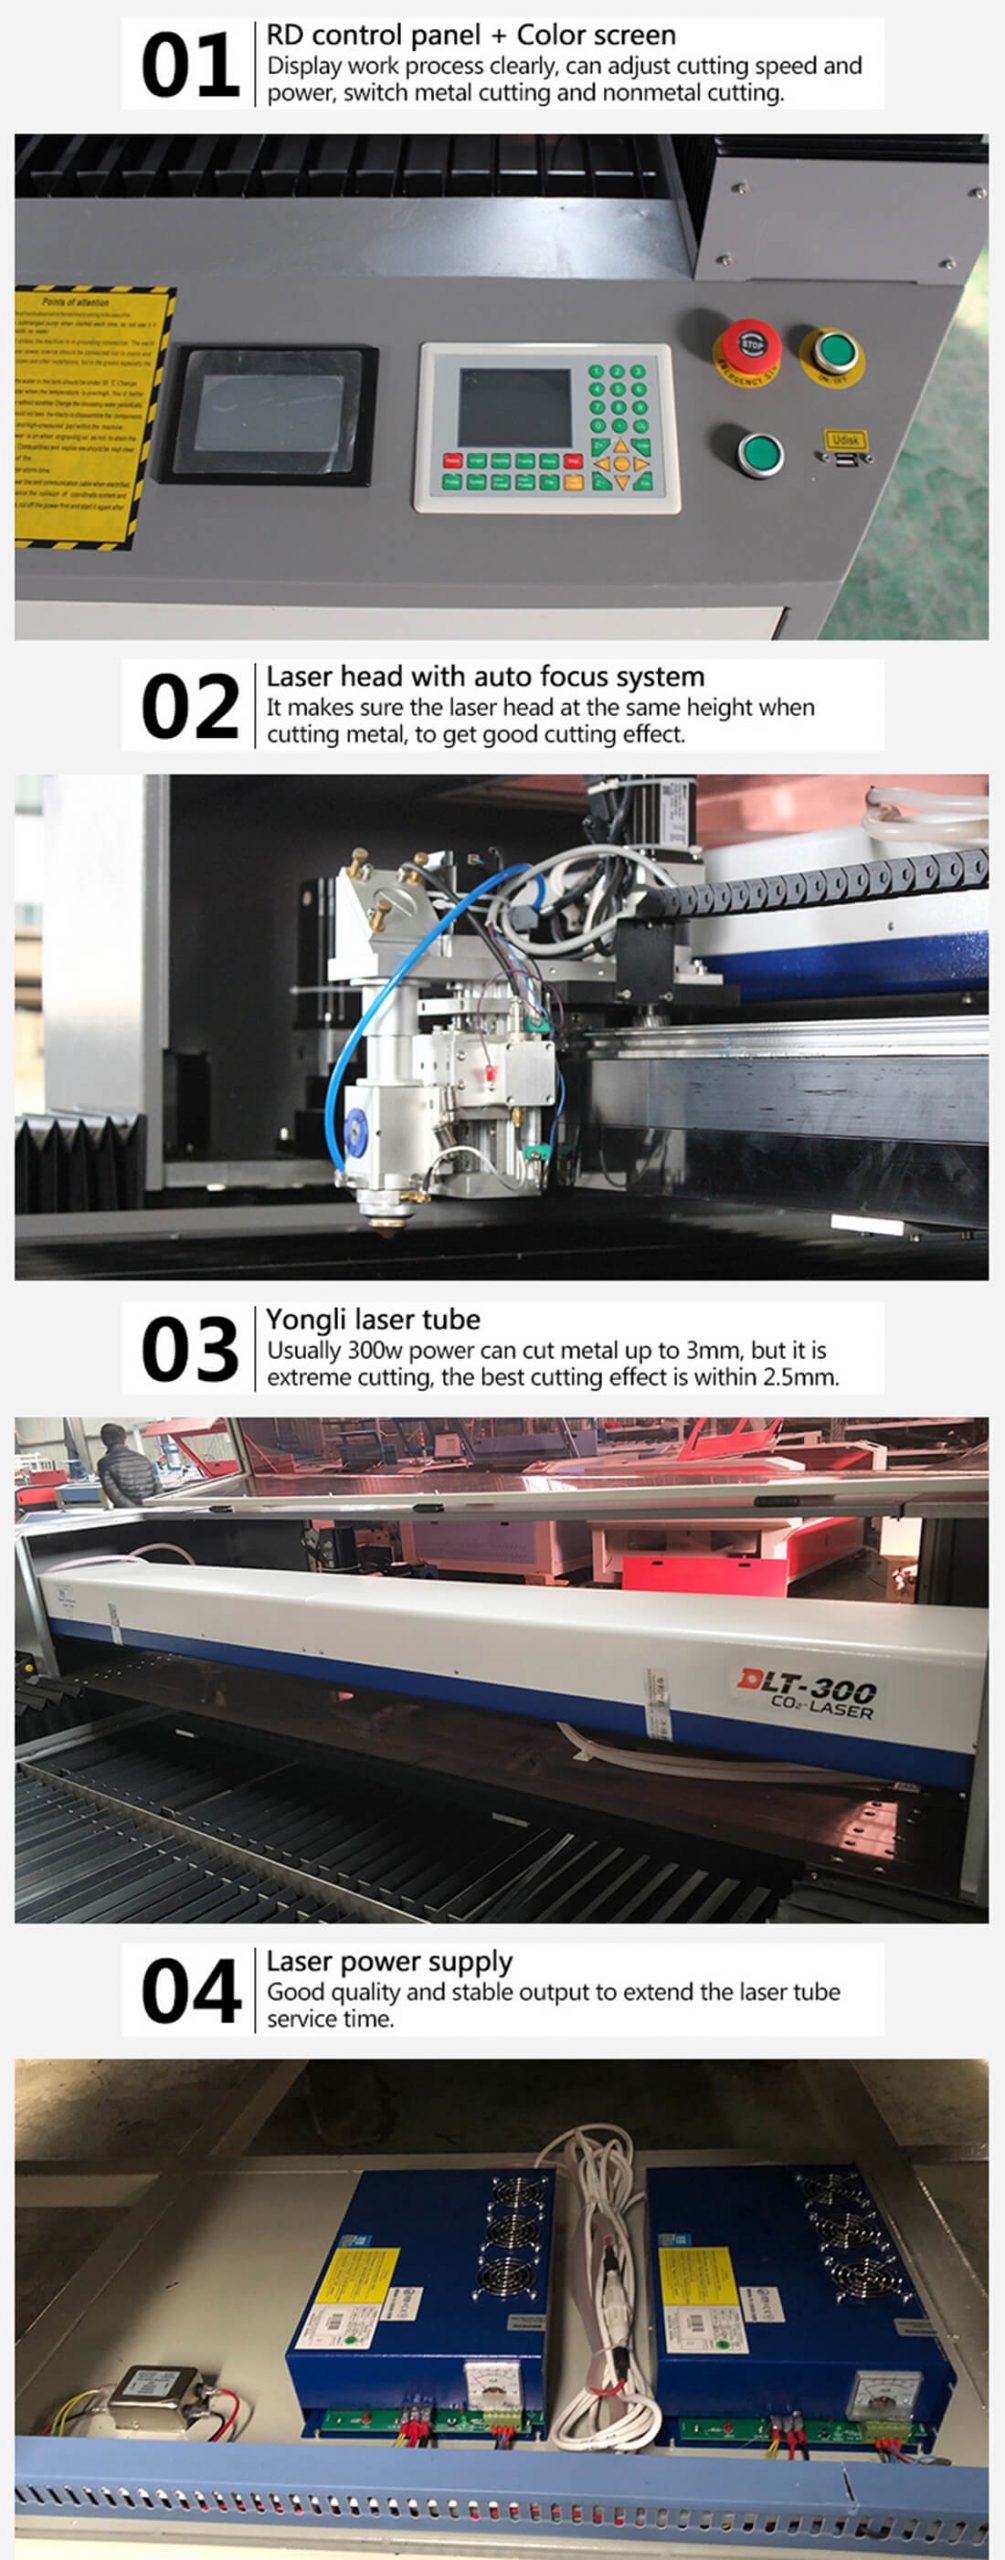 specification of the laser cutting machine